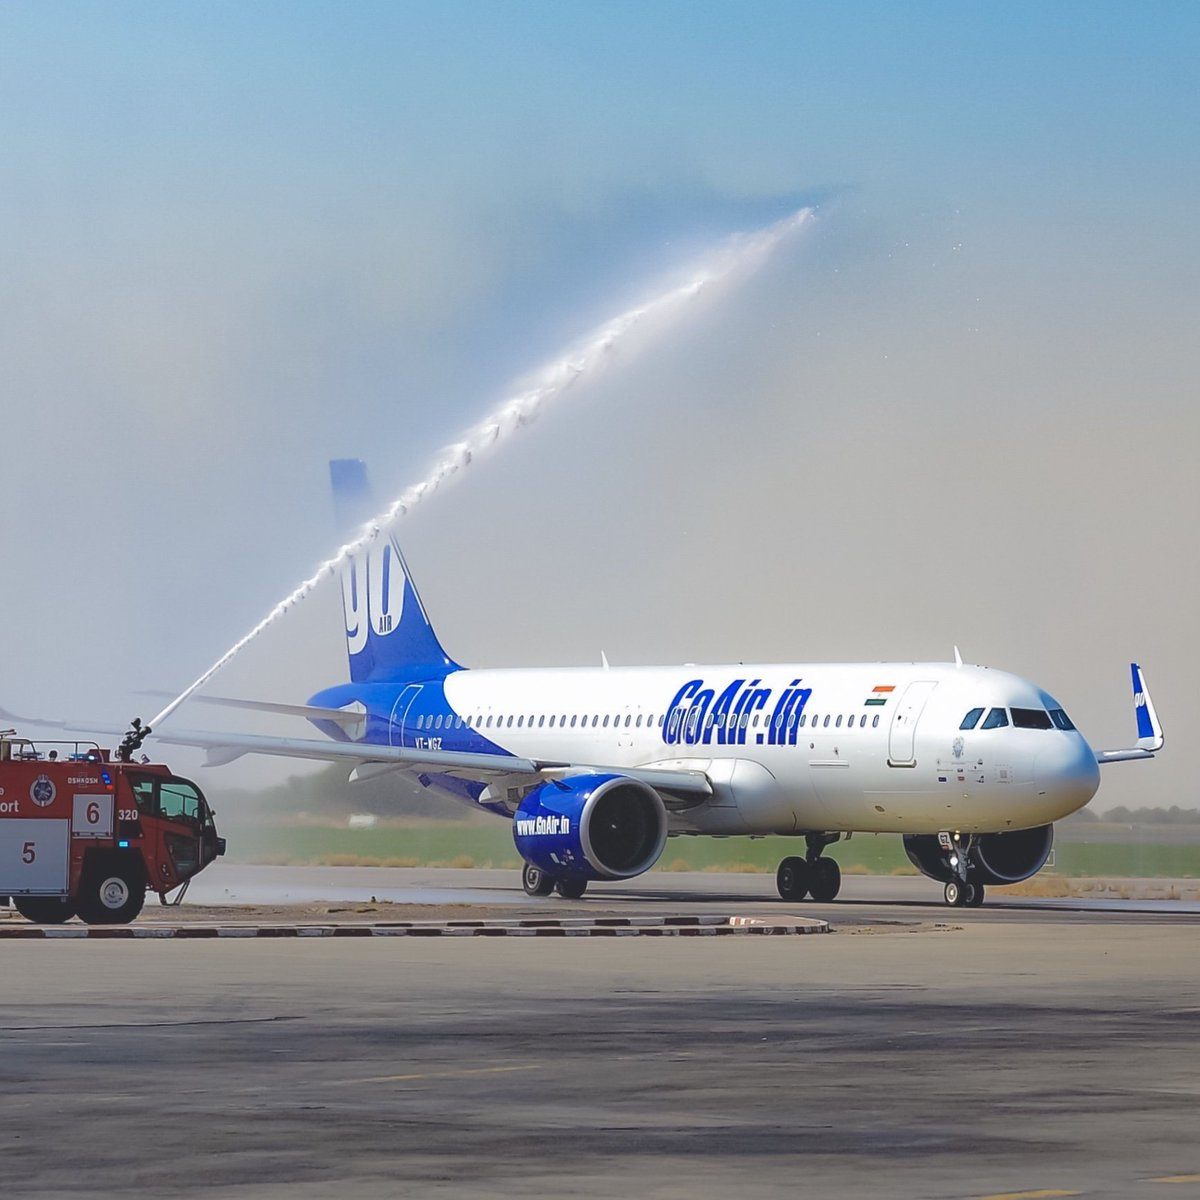 To Blue-tiful beginnings! ✈️😍We were greeted with a traditional water cannon salute at our newest destination #Kuwait.